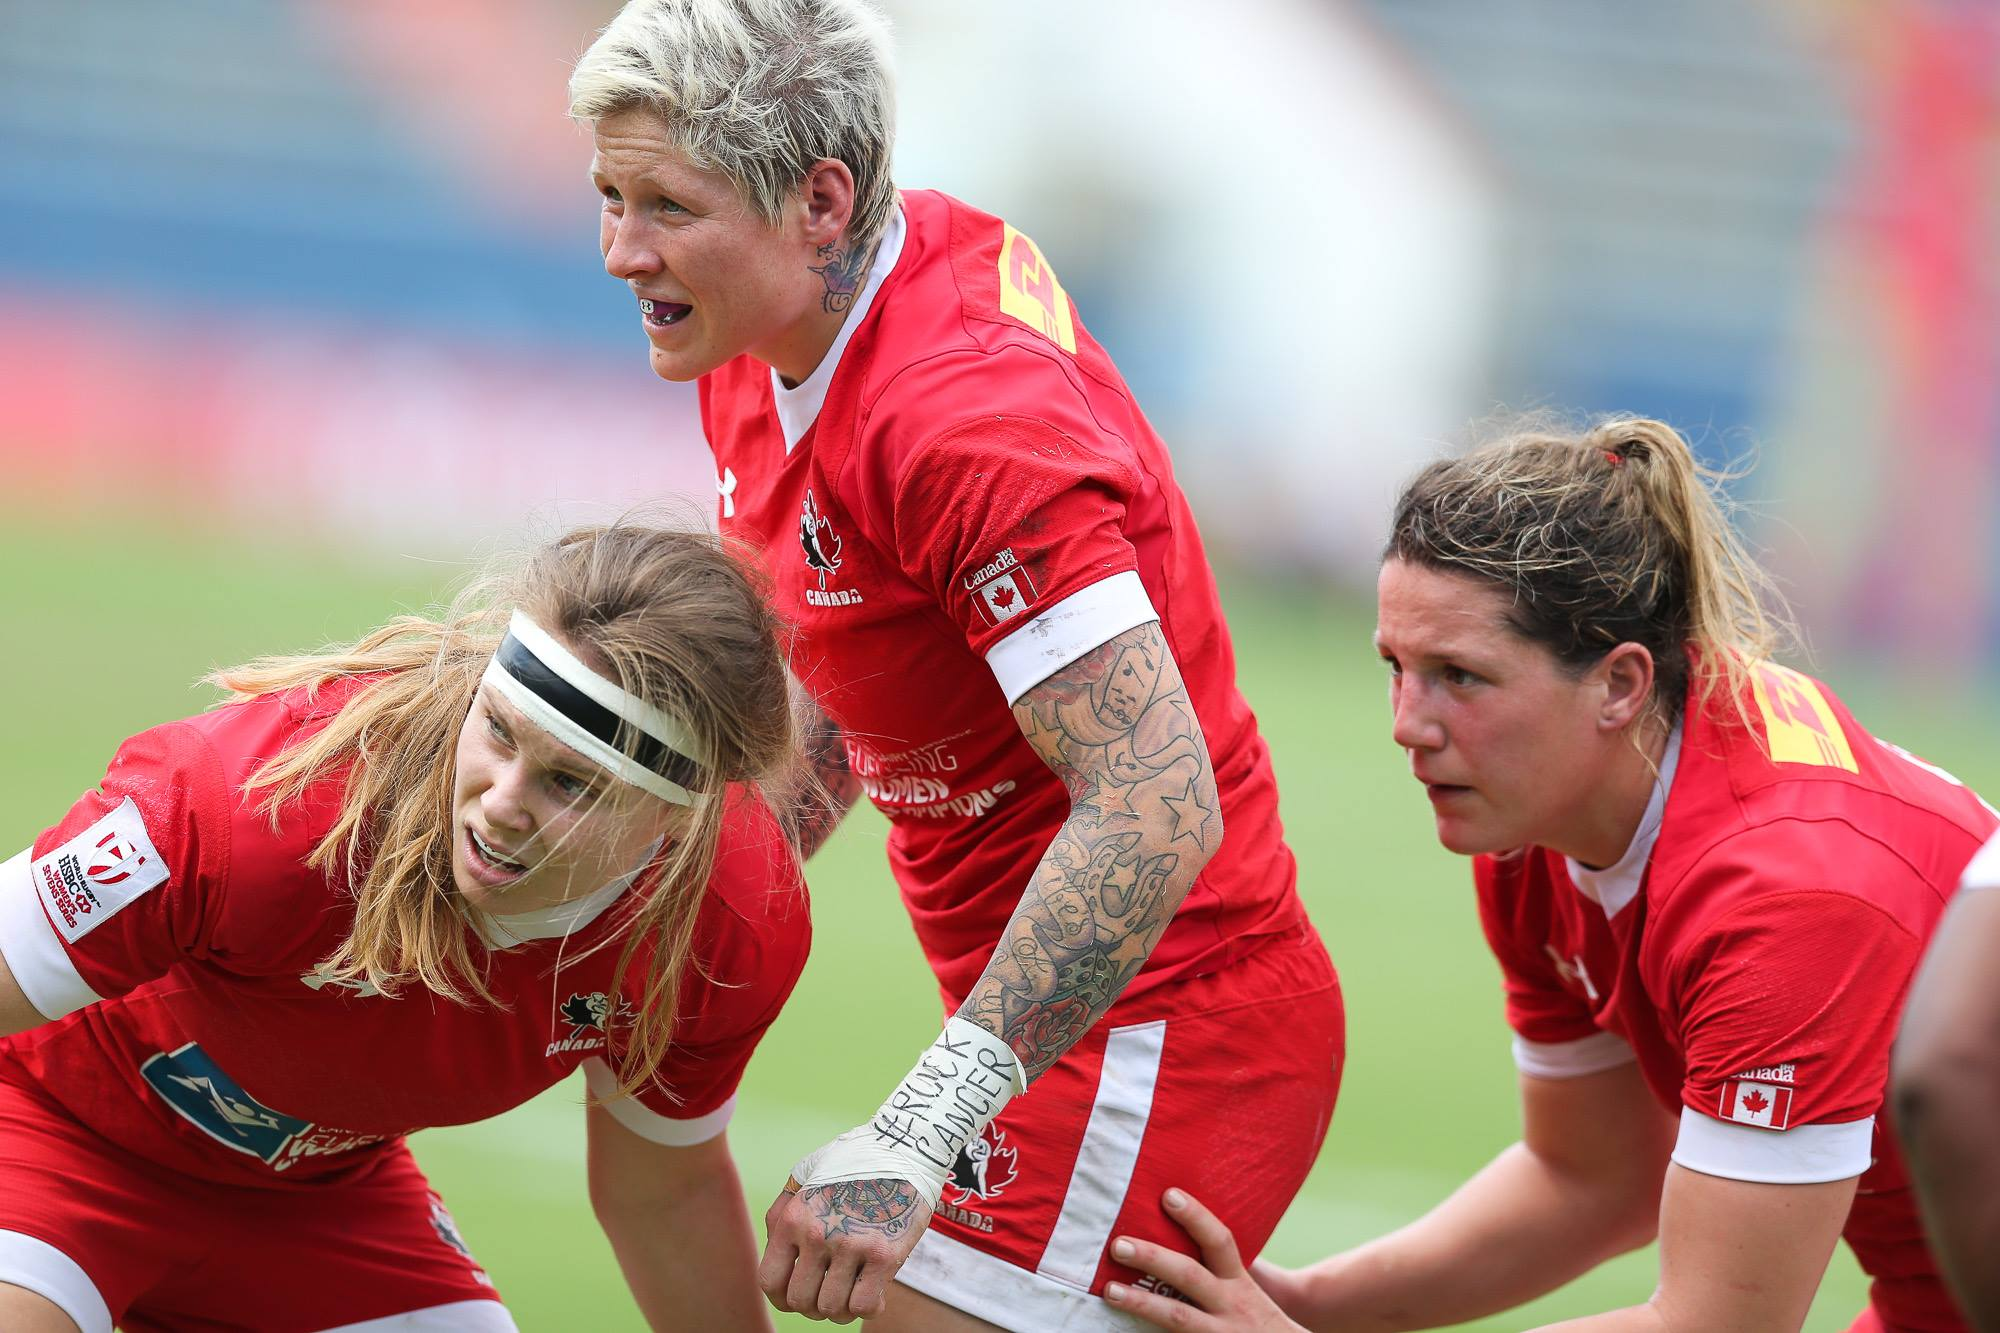 Canada beats New Zealand Sevens for the first time (Photo courtesy of the official Facebook page of Rugby Canada).